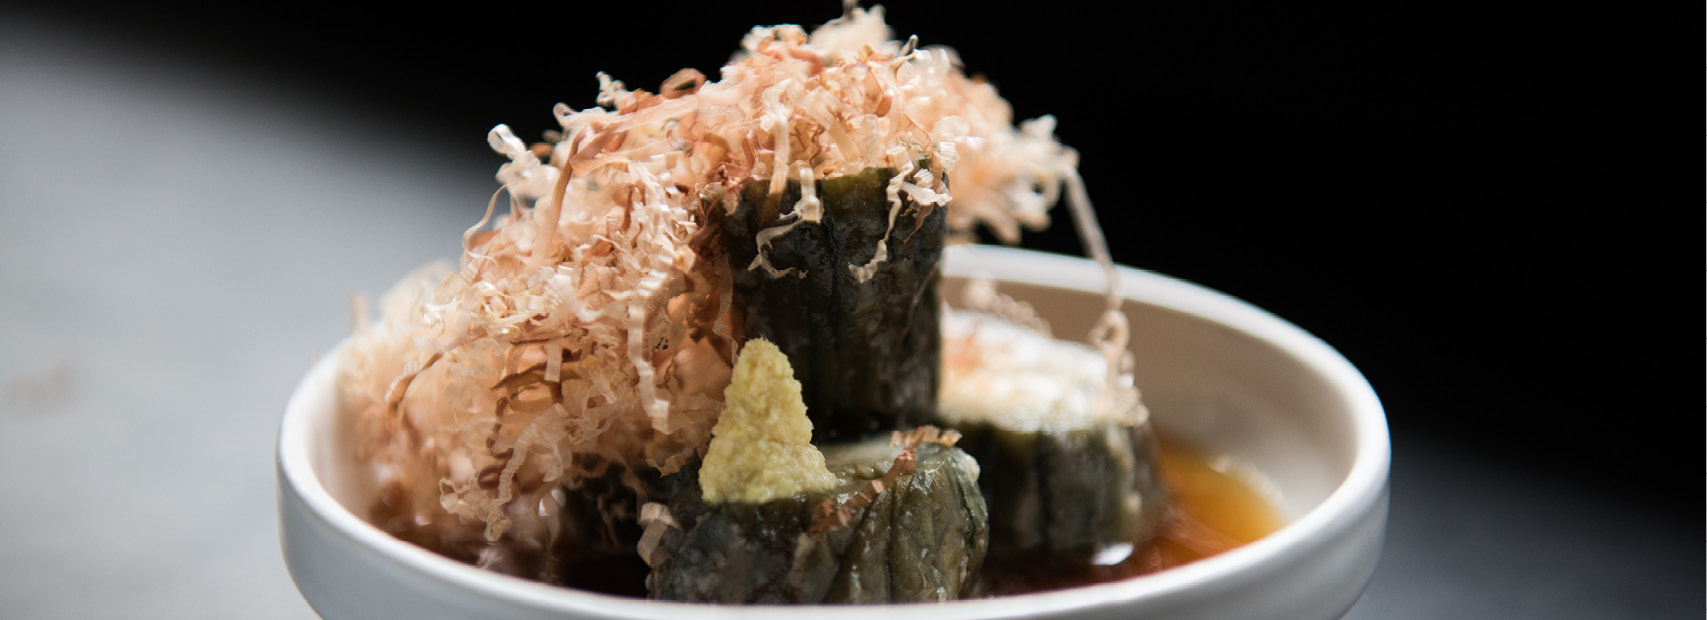 From nose-to-tail delicacies at 100 Mahaseth to dinner with stunning views at Seen and our favorite modern izakaya, Jua.